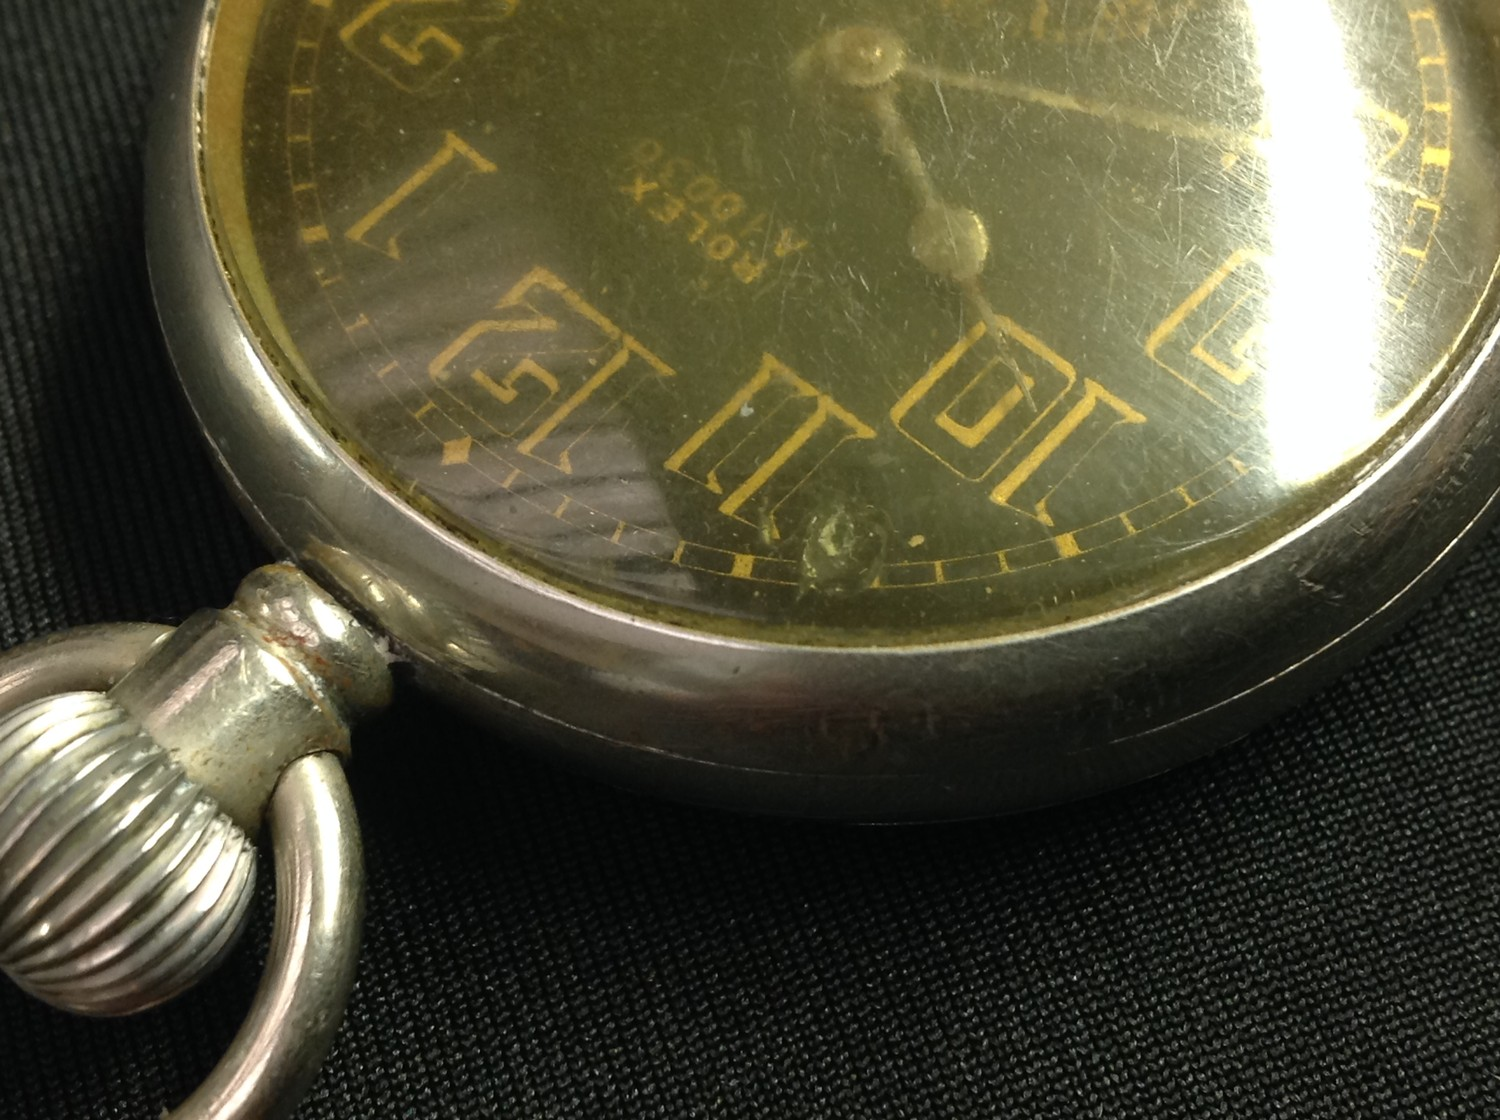 WW2 'Military' style private purchase Rolex A10030 open faced pocket watch, black enamel dial gold - Image 7 of 10